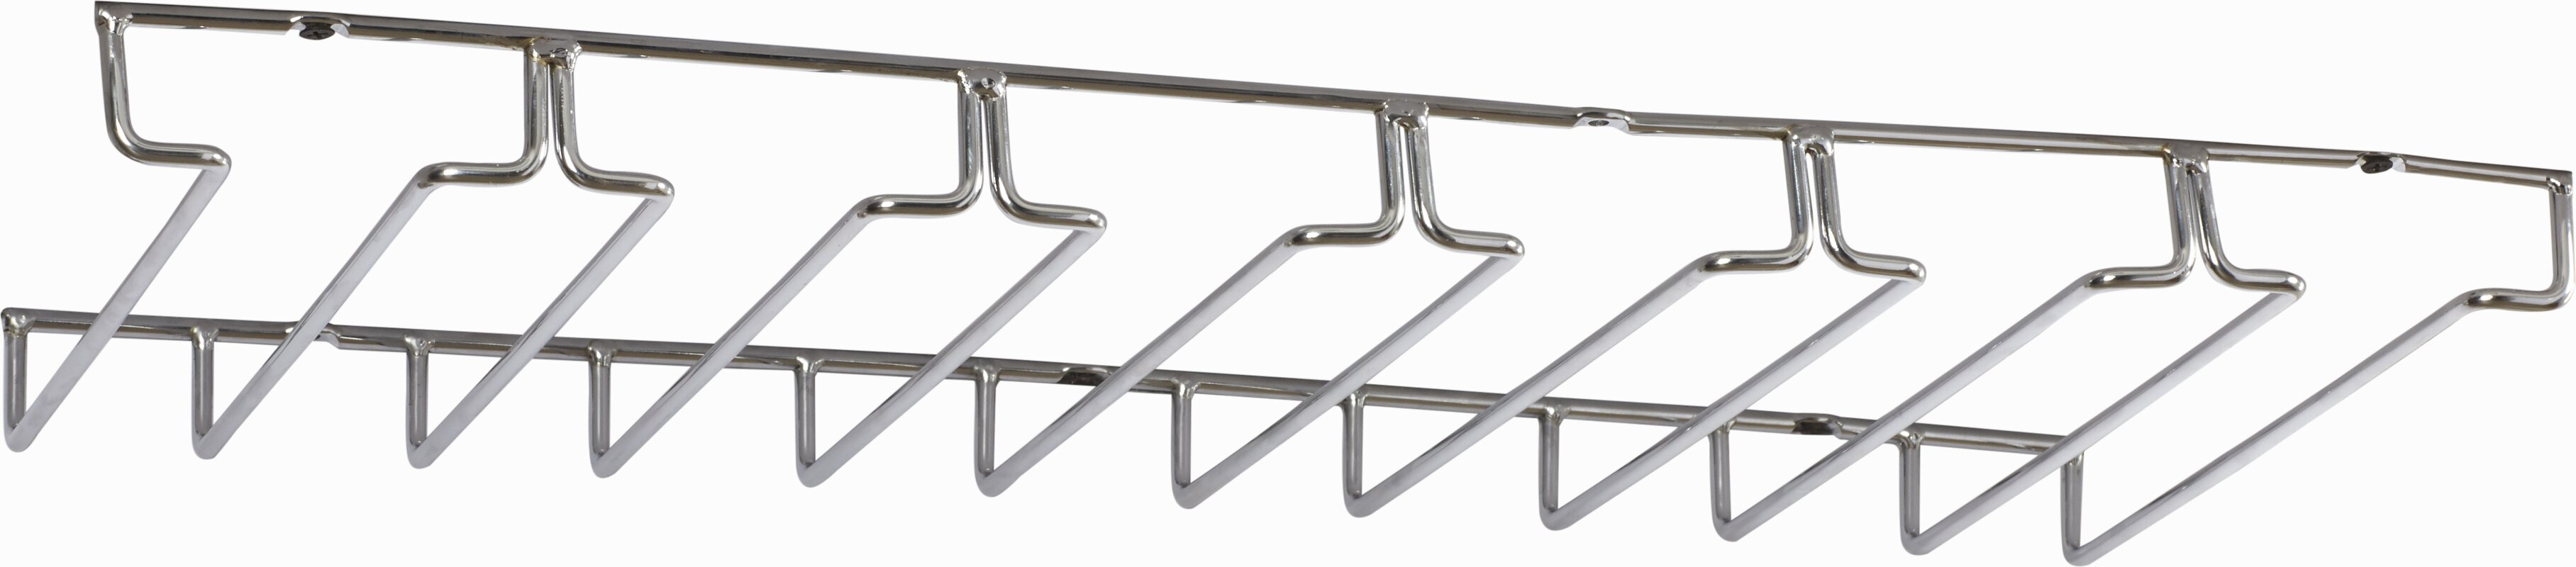 asp racks rack enthusiast metal glass zoom hanging wine preparing